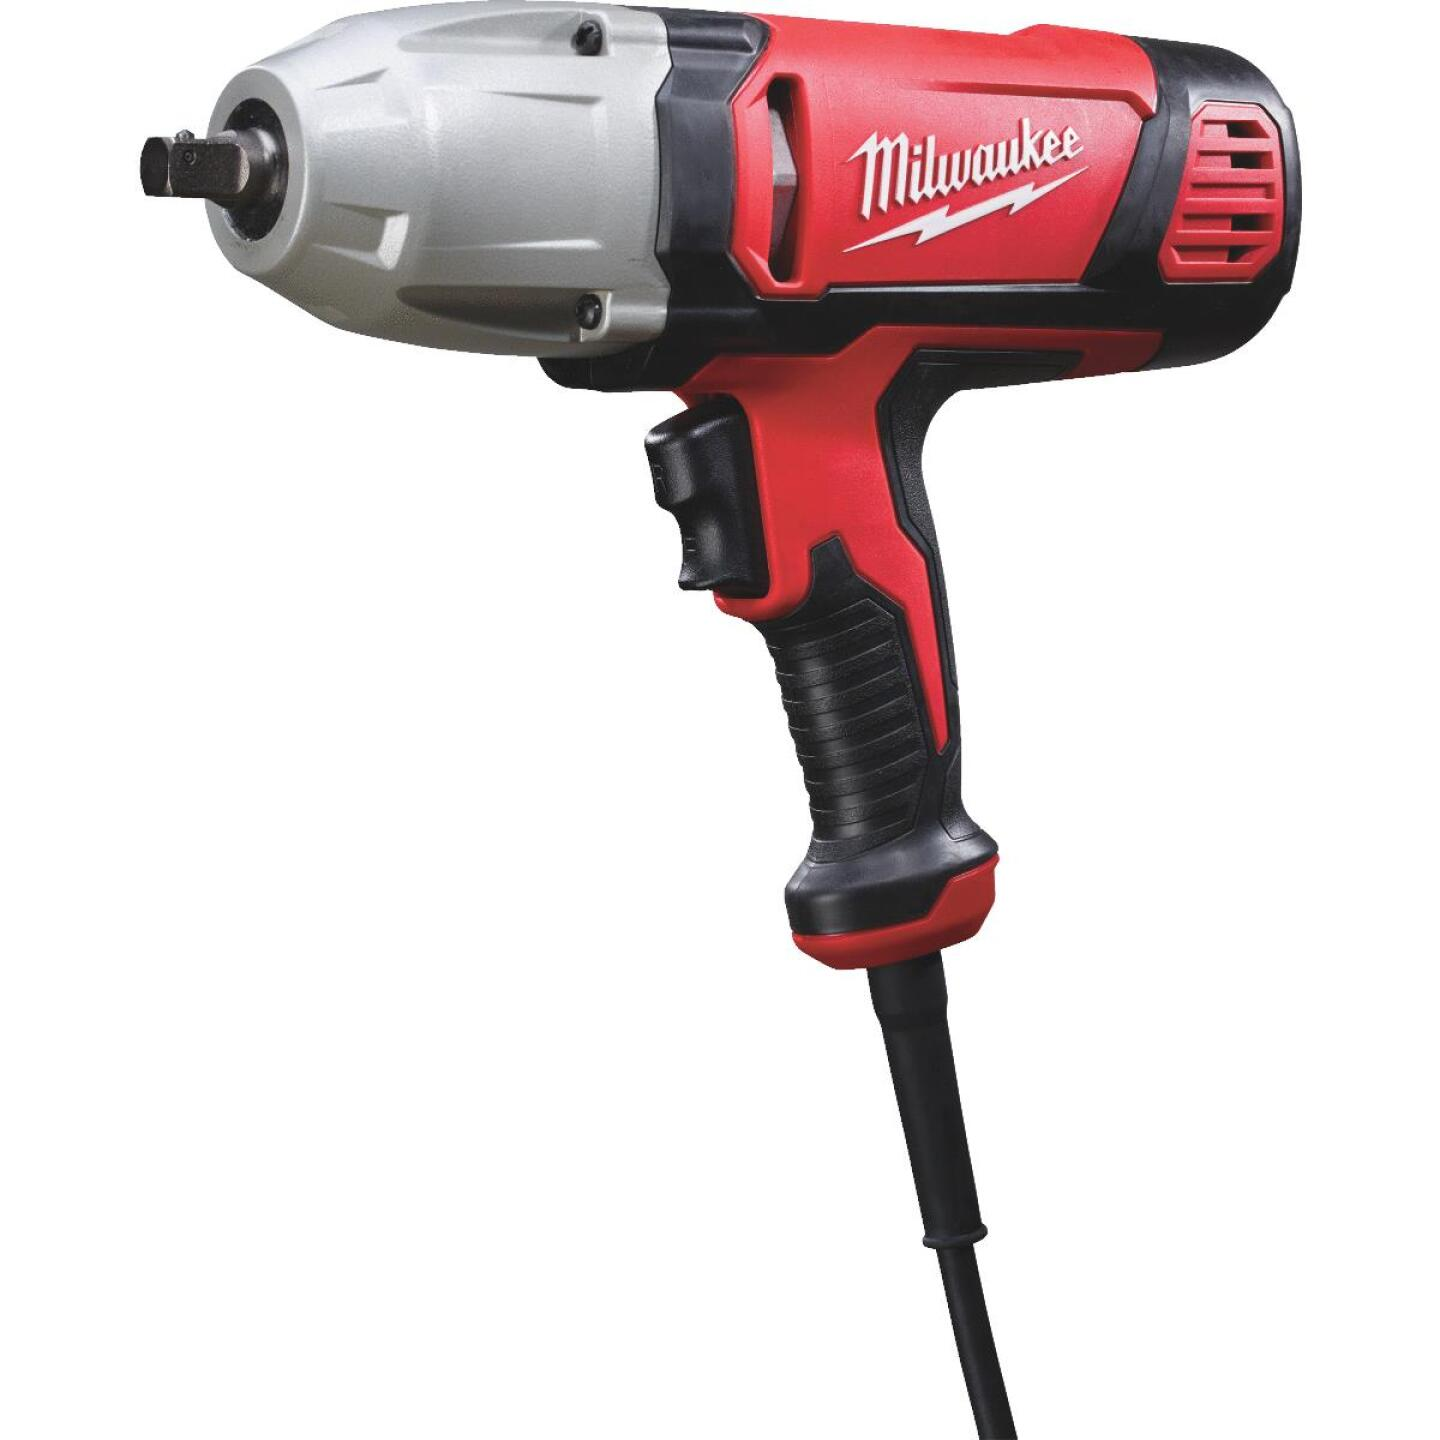 Milwaukee 1/2 In. Impact Wrench with Rocker Switch and Detent Pin Image 1